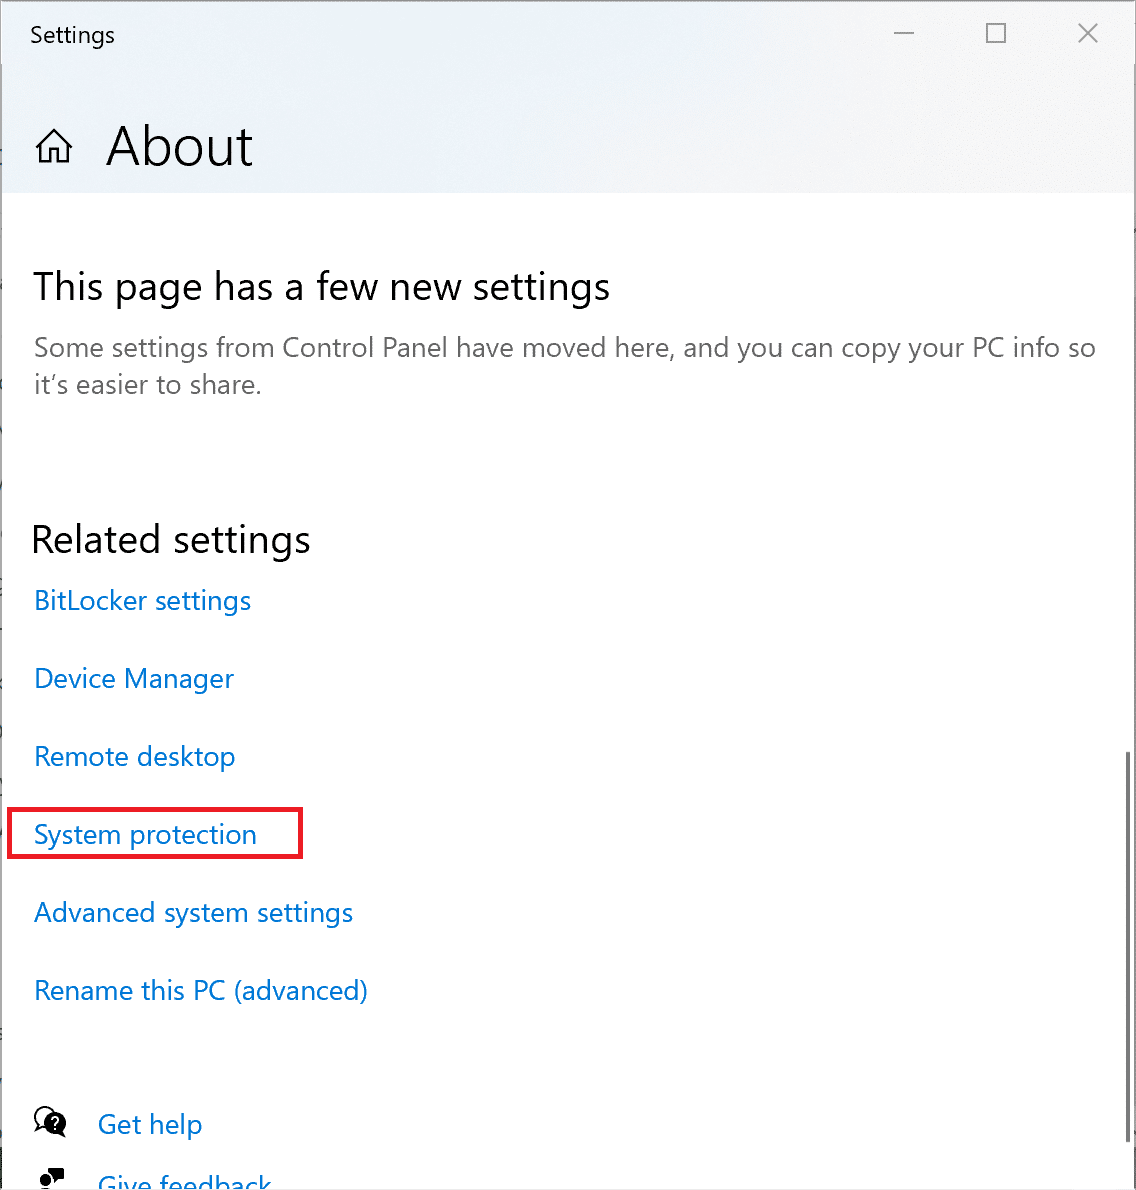 Scroll down in the new window and select System protection